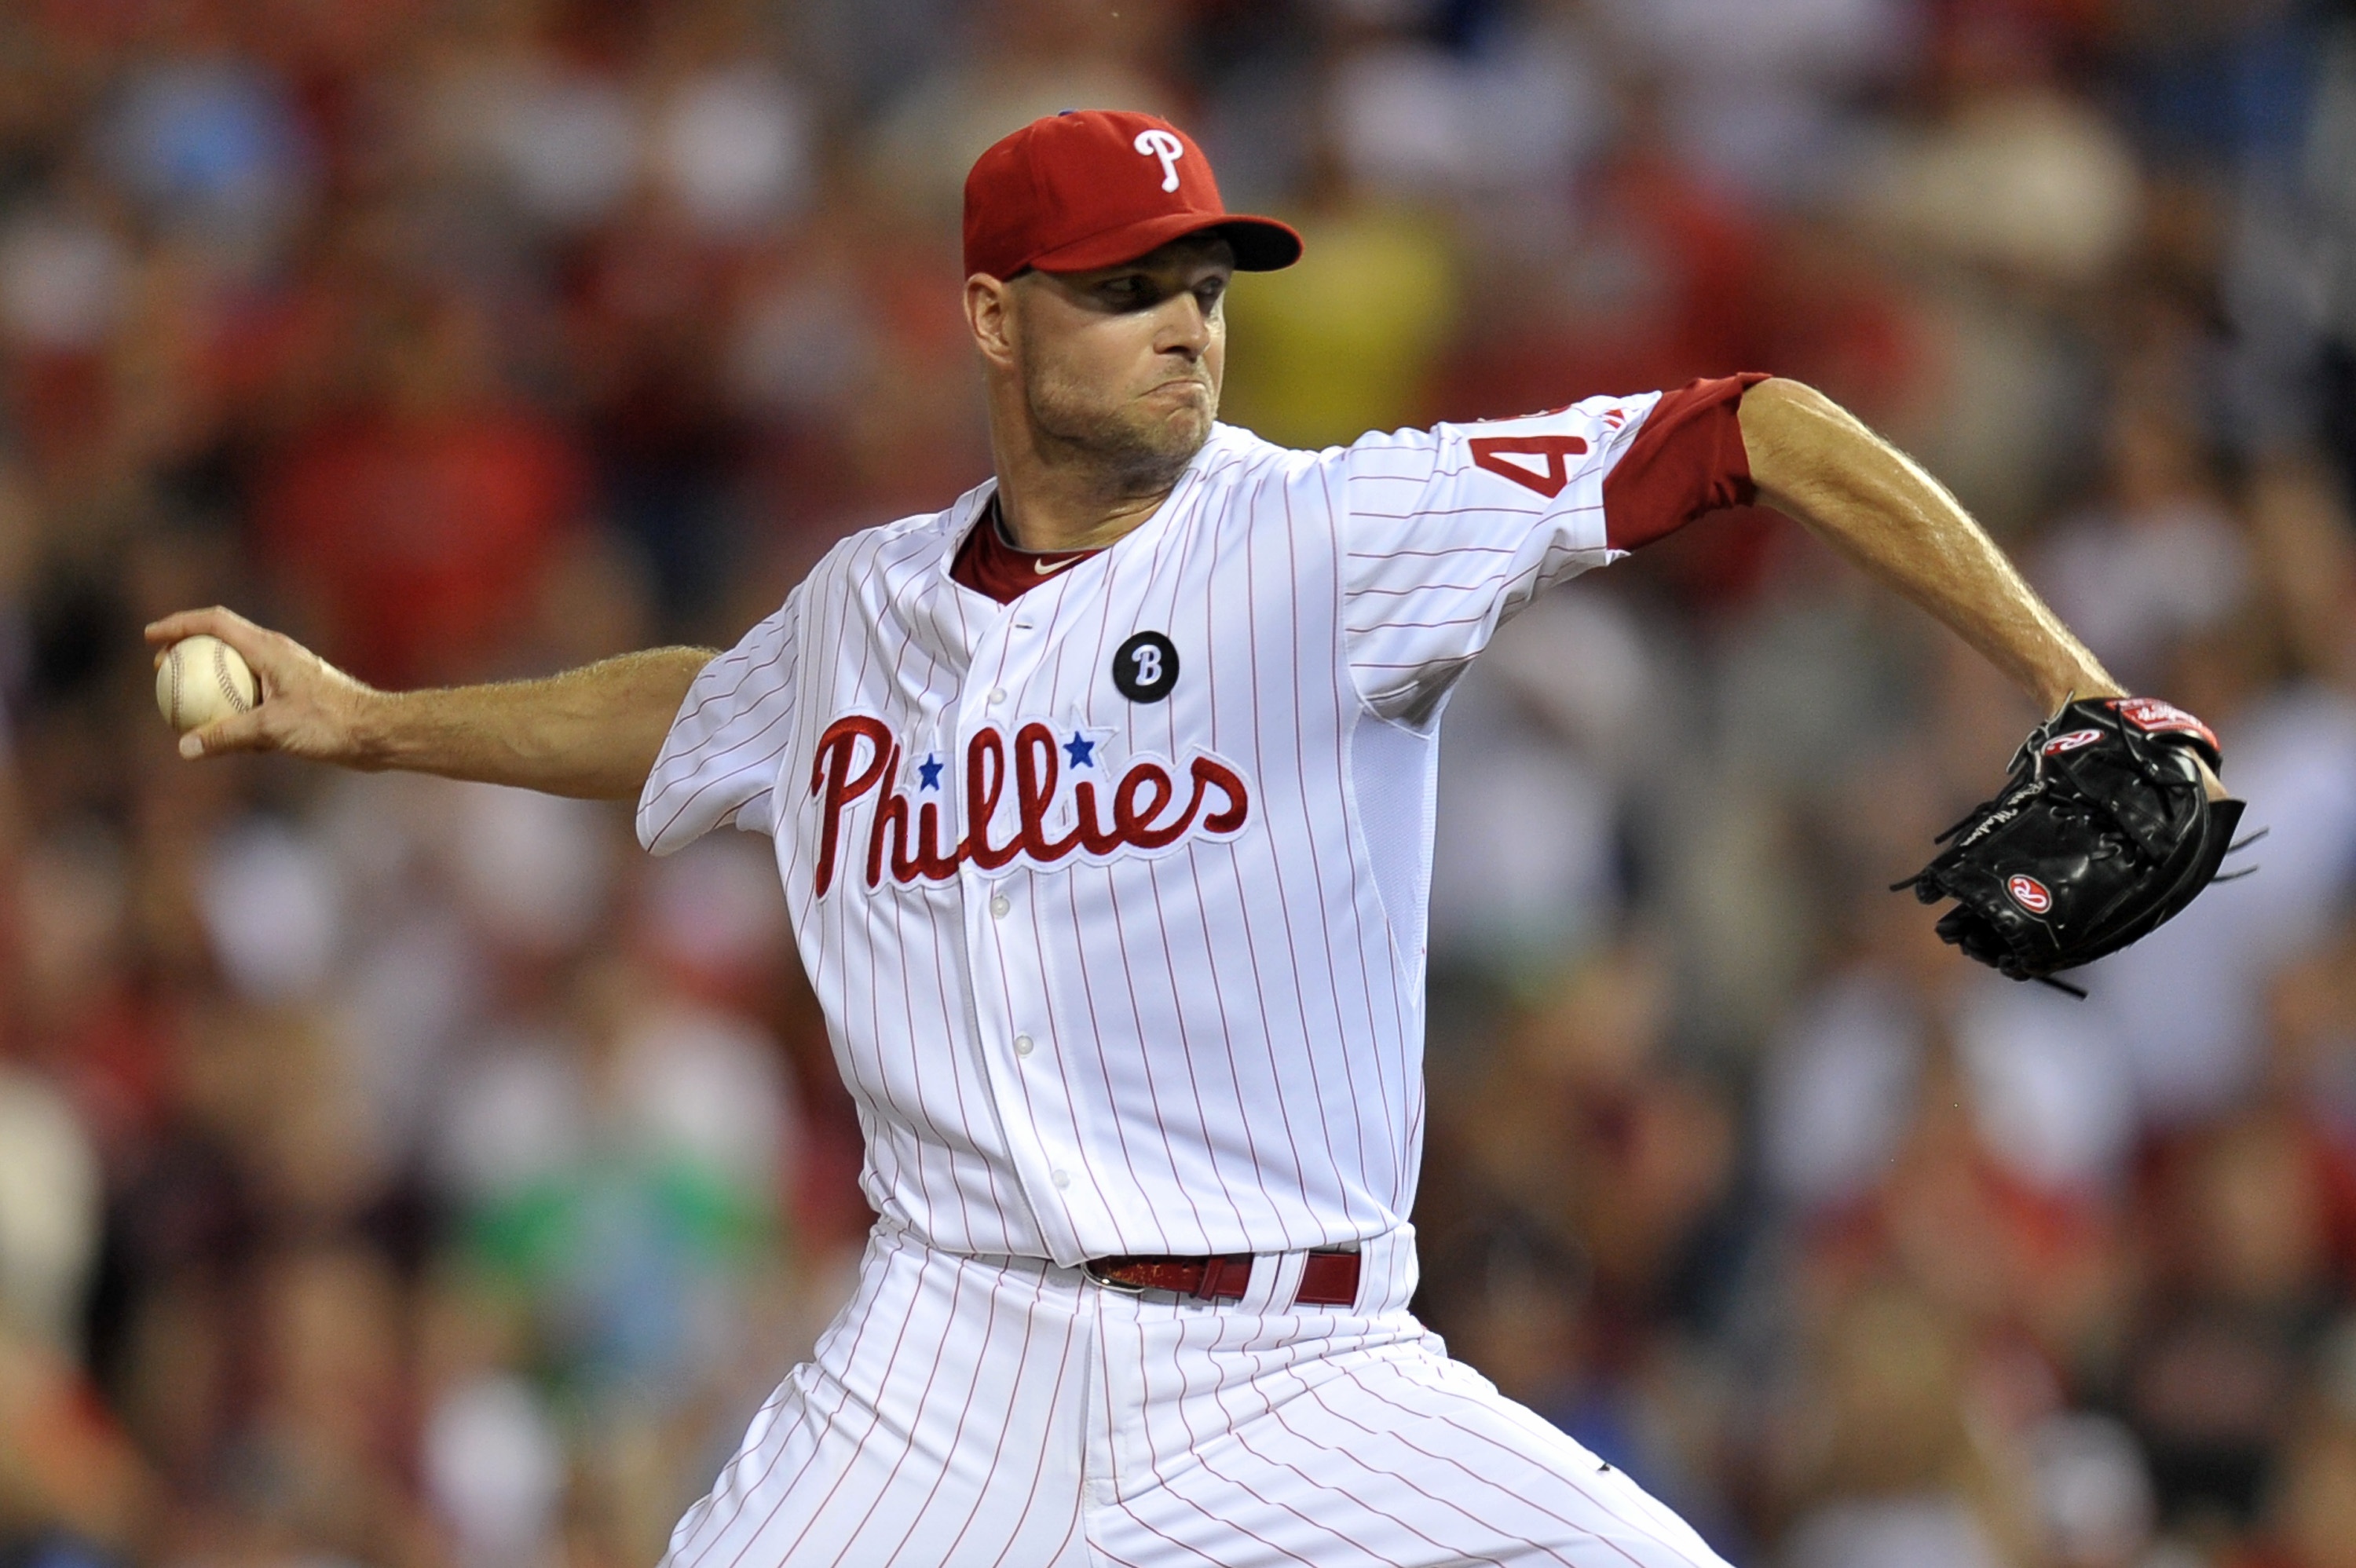 PHILADELPHIA, PA - JUNE 06: Closing pitcher Ryan Madson #46 of the Philadelphia Phillies throws the final pitch of the game against the Los Angeles Dodgers at Citizens Bank Park on June 6, 2011 in Philadelphia, Pennsylvania. The Phillies won 3-1. (Photo b